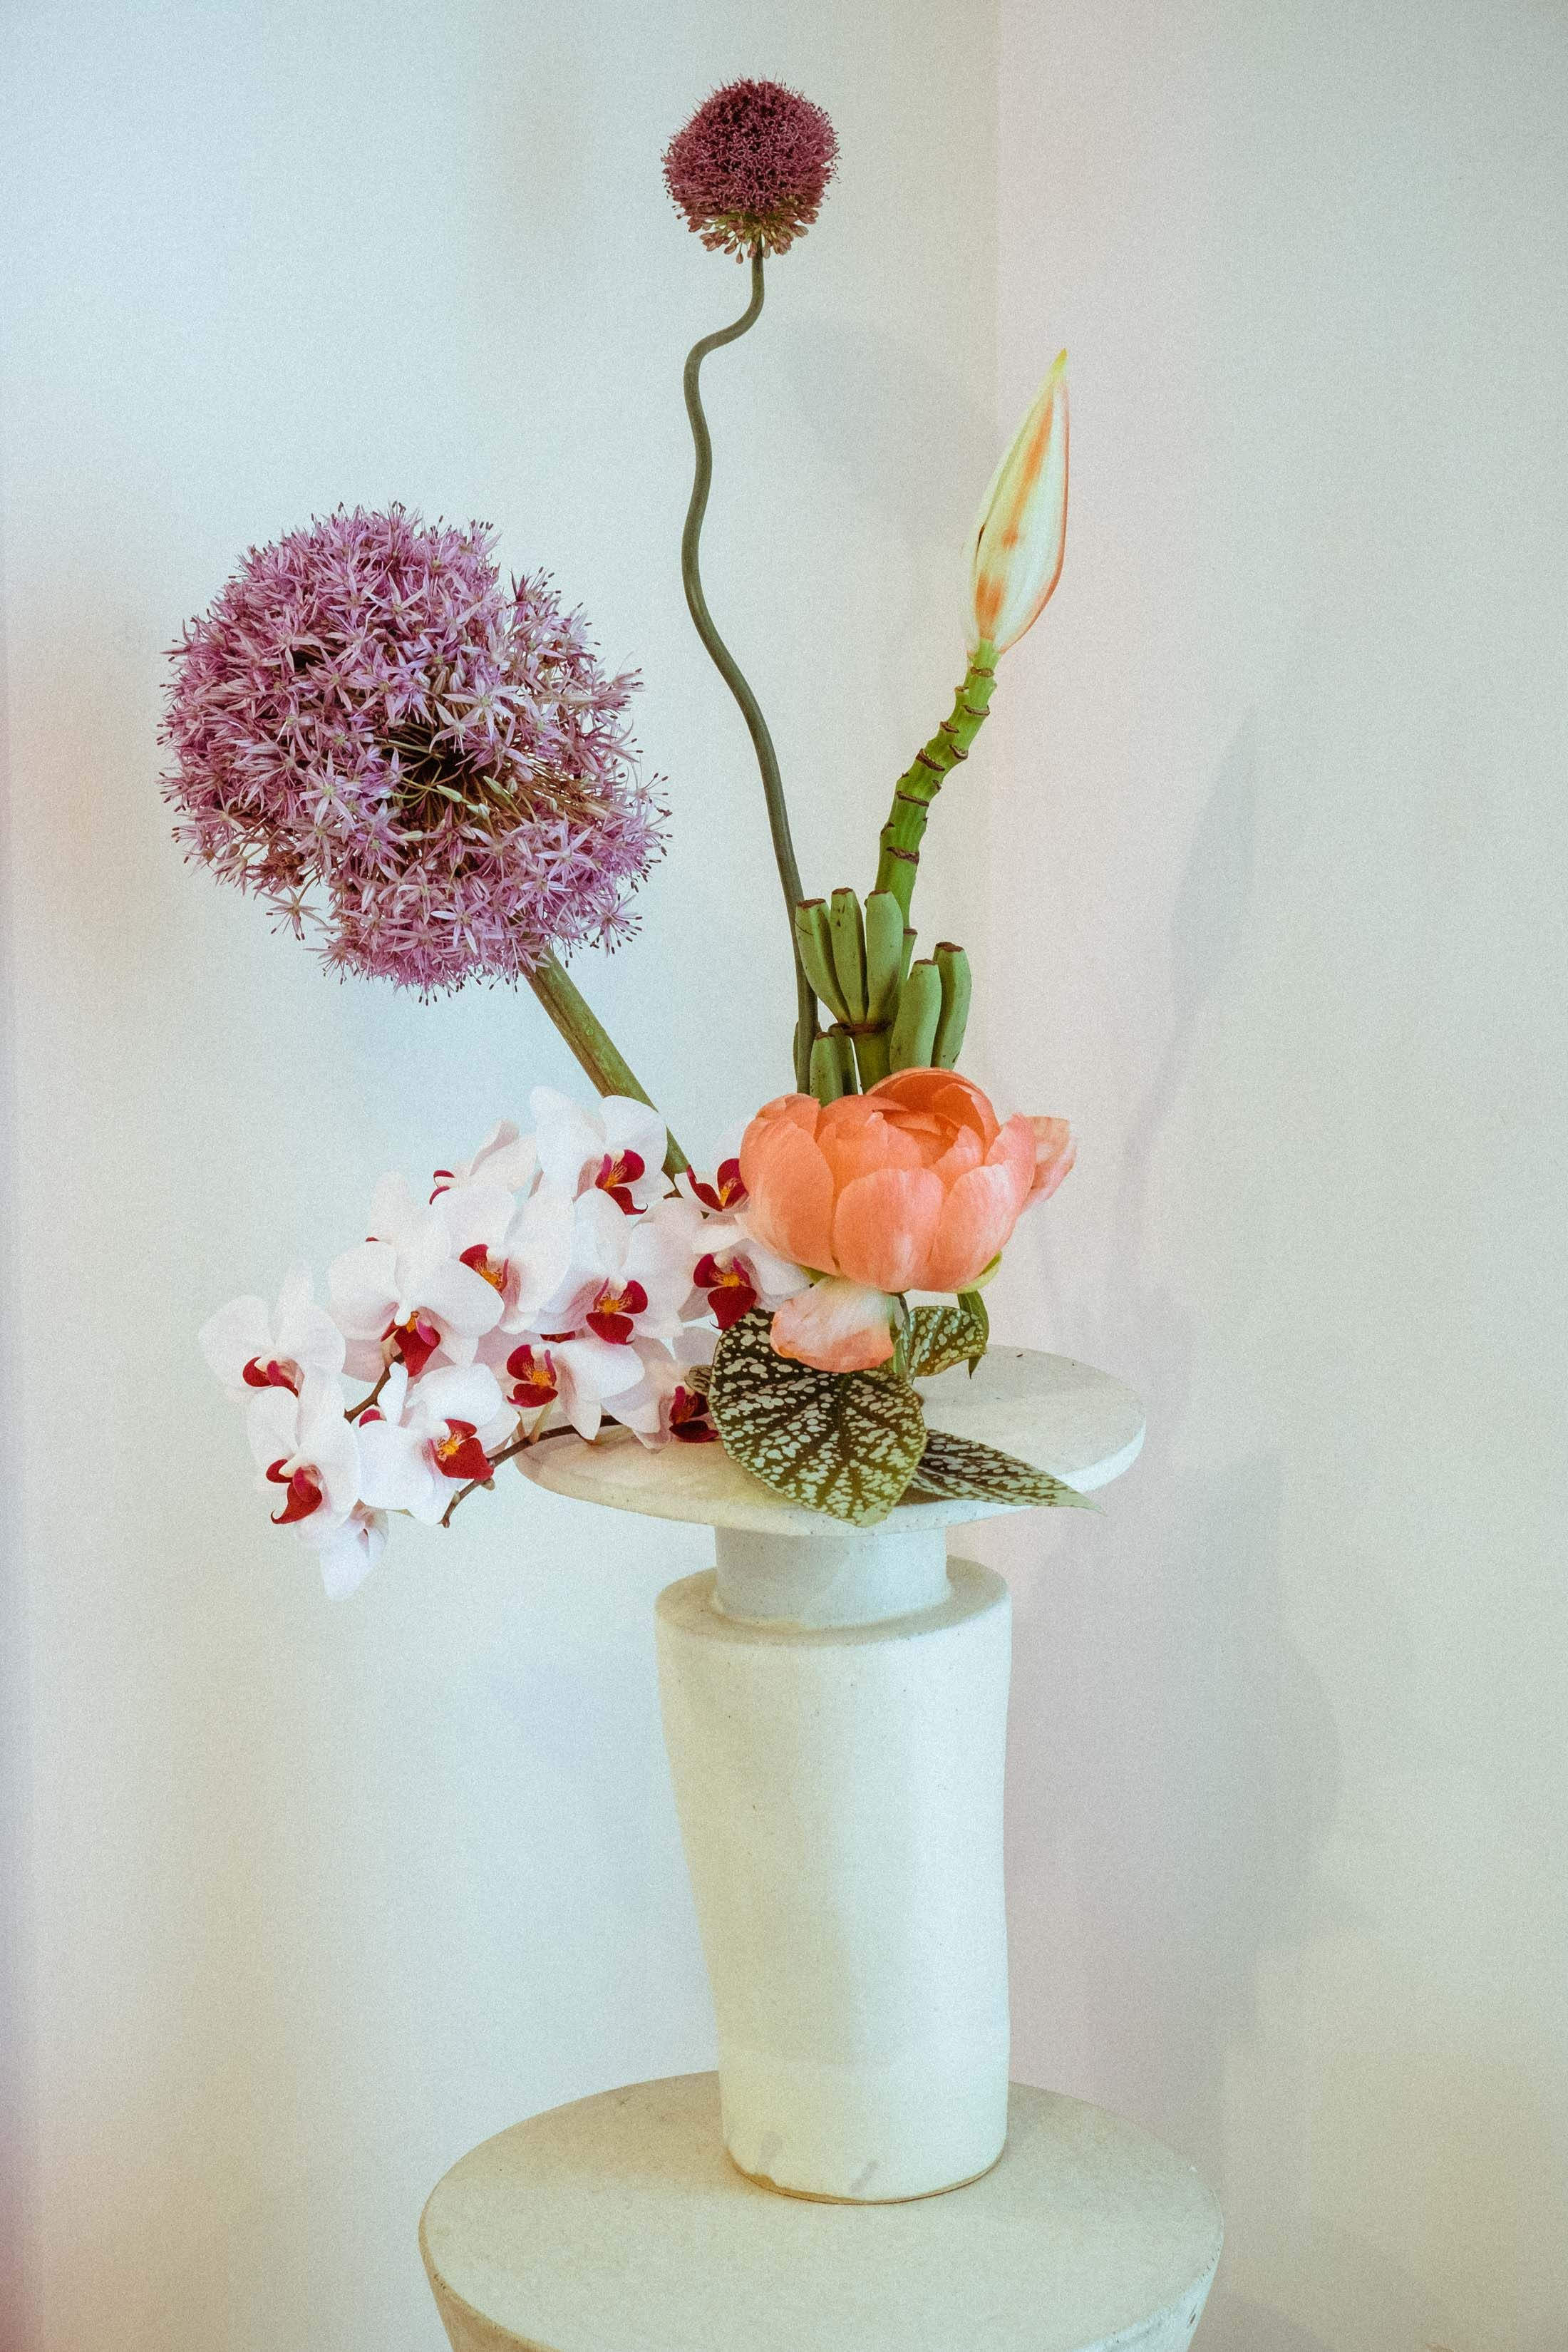 Flowers by Brittany Asch of Brrch Floral in the Glossier Showroom.jpeg